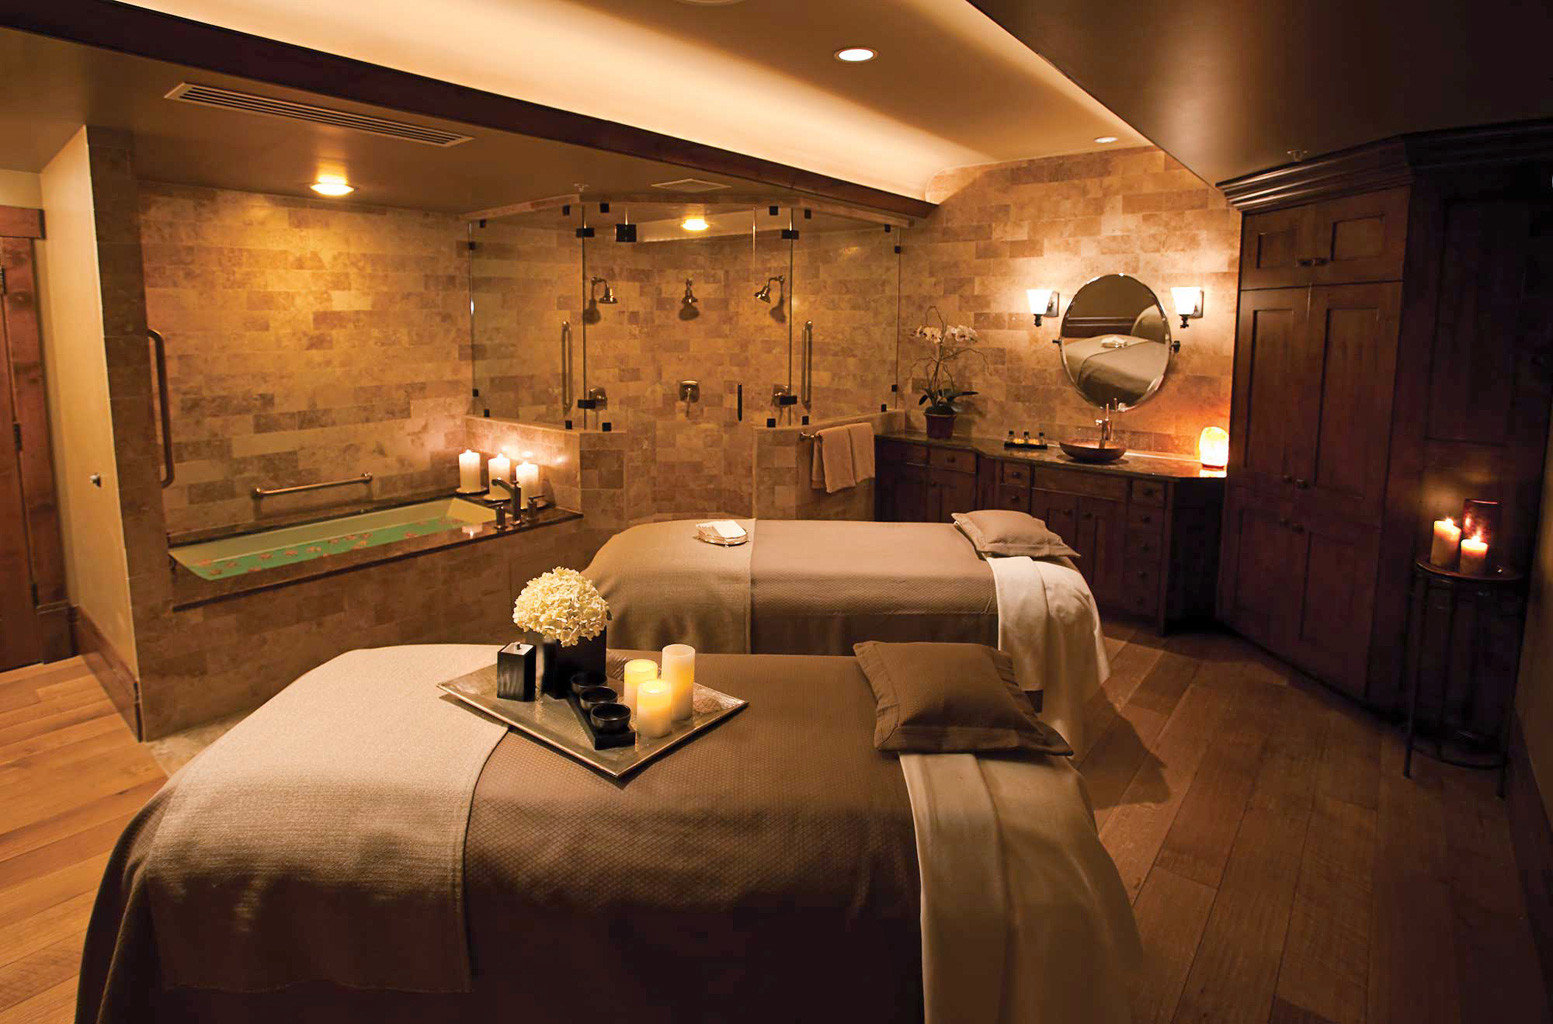 Bath Hotels Lodge Luxury Travel Mountains + Skiing Rustic Spa Wellness property Bedroom Suite home lighting living room cottage lamp